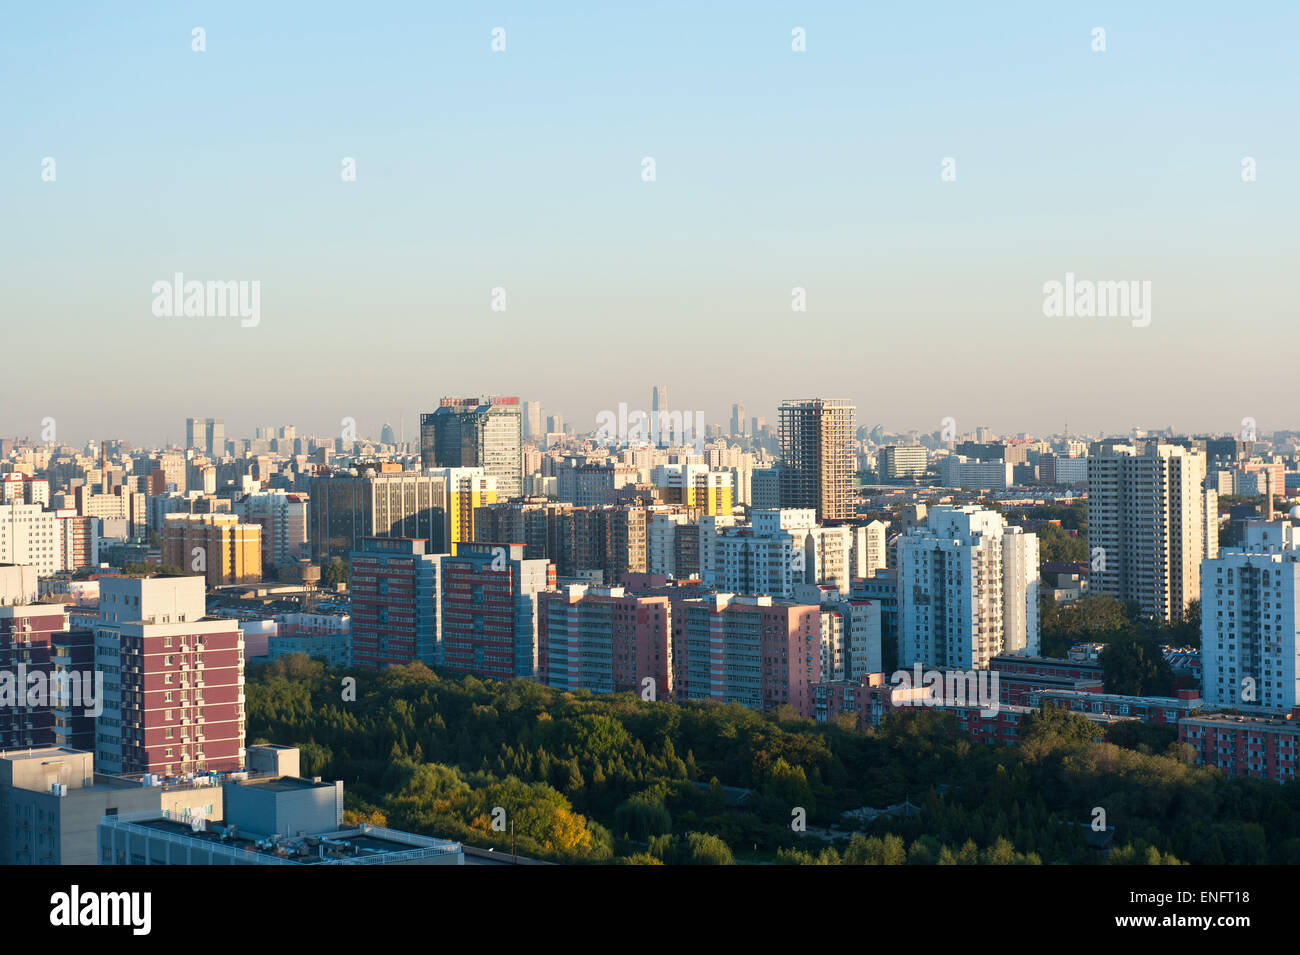 Skyscrapers, view of the city, Beijing, People's Republic of China - Stock Image